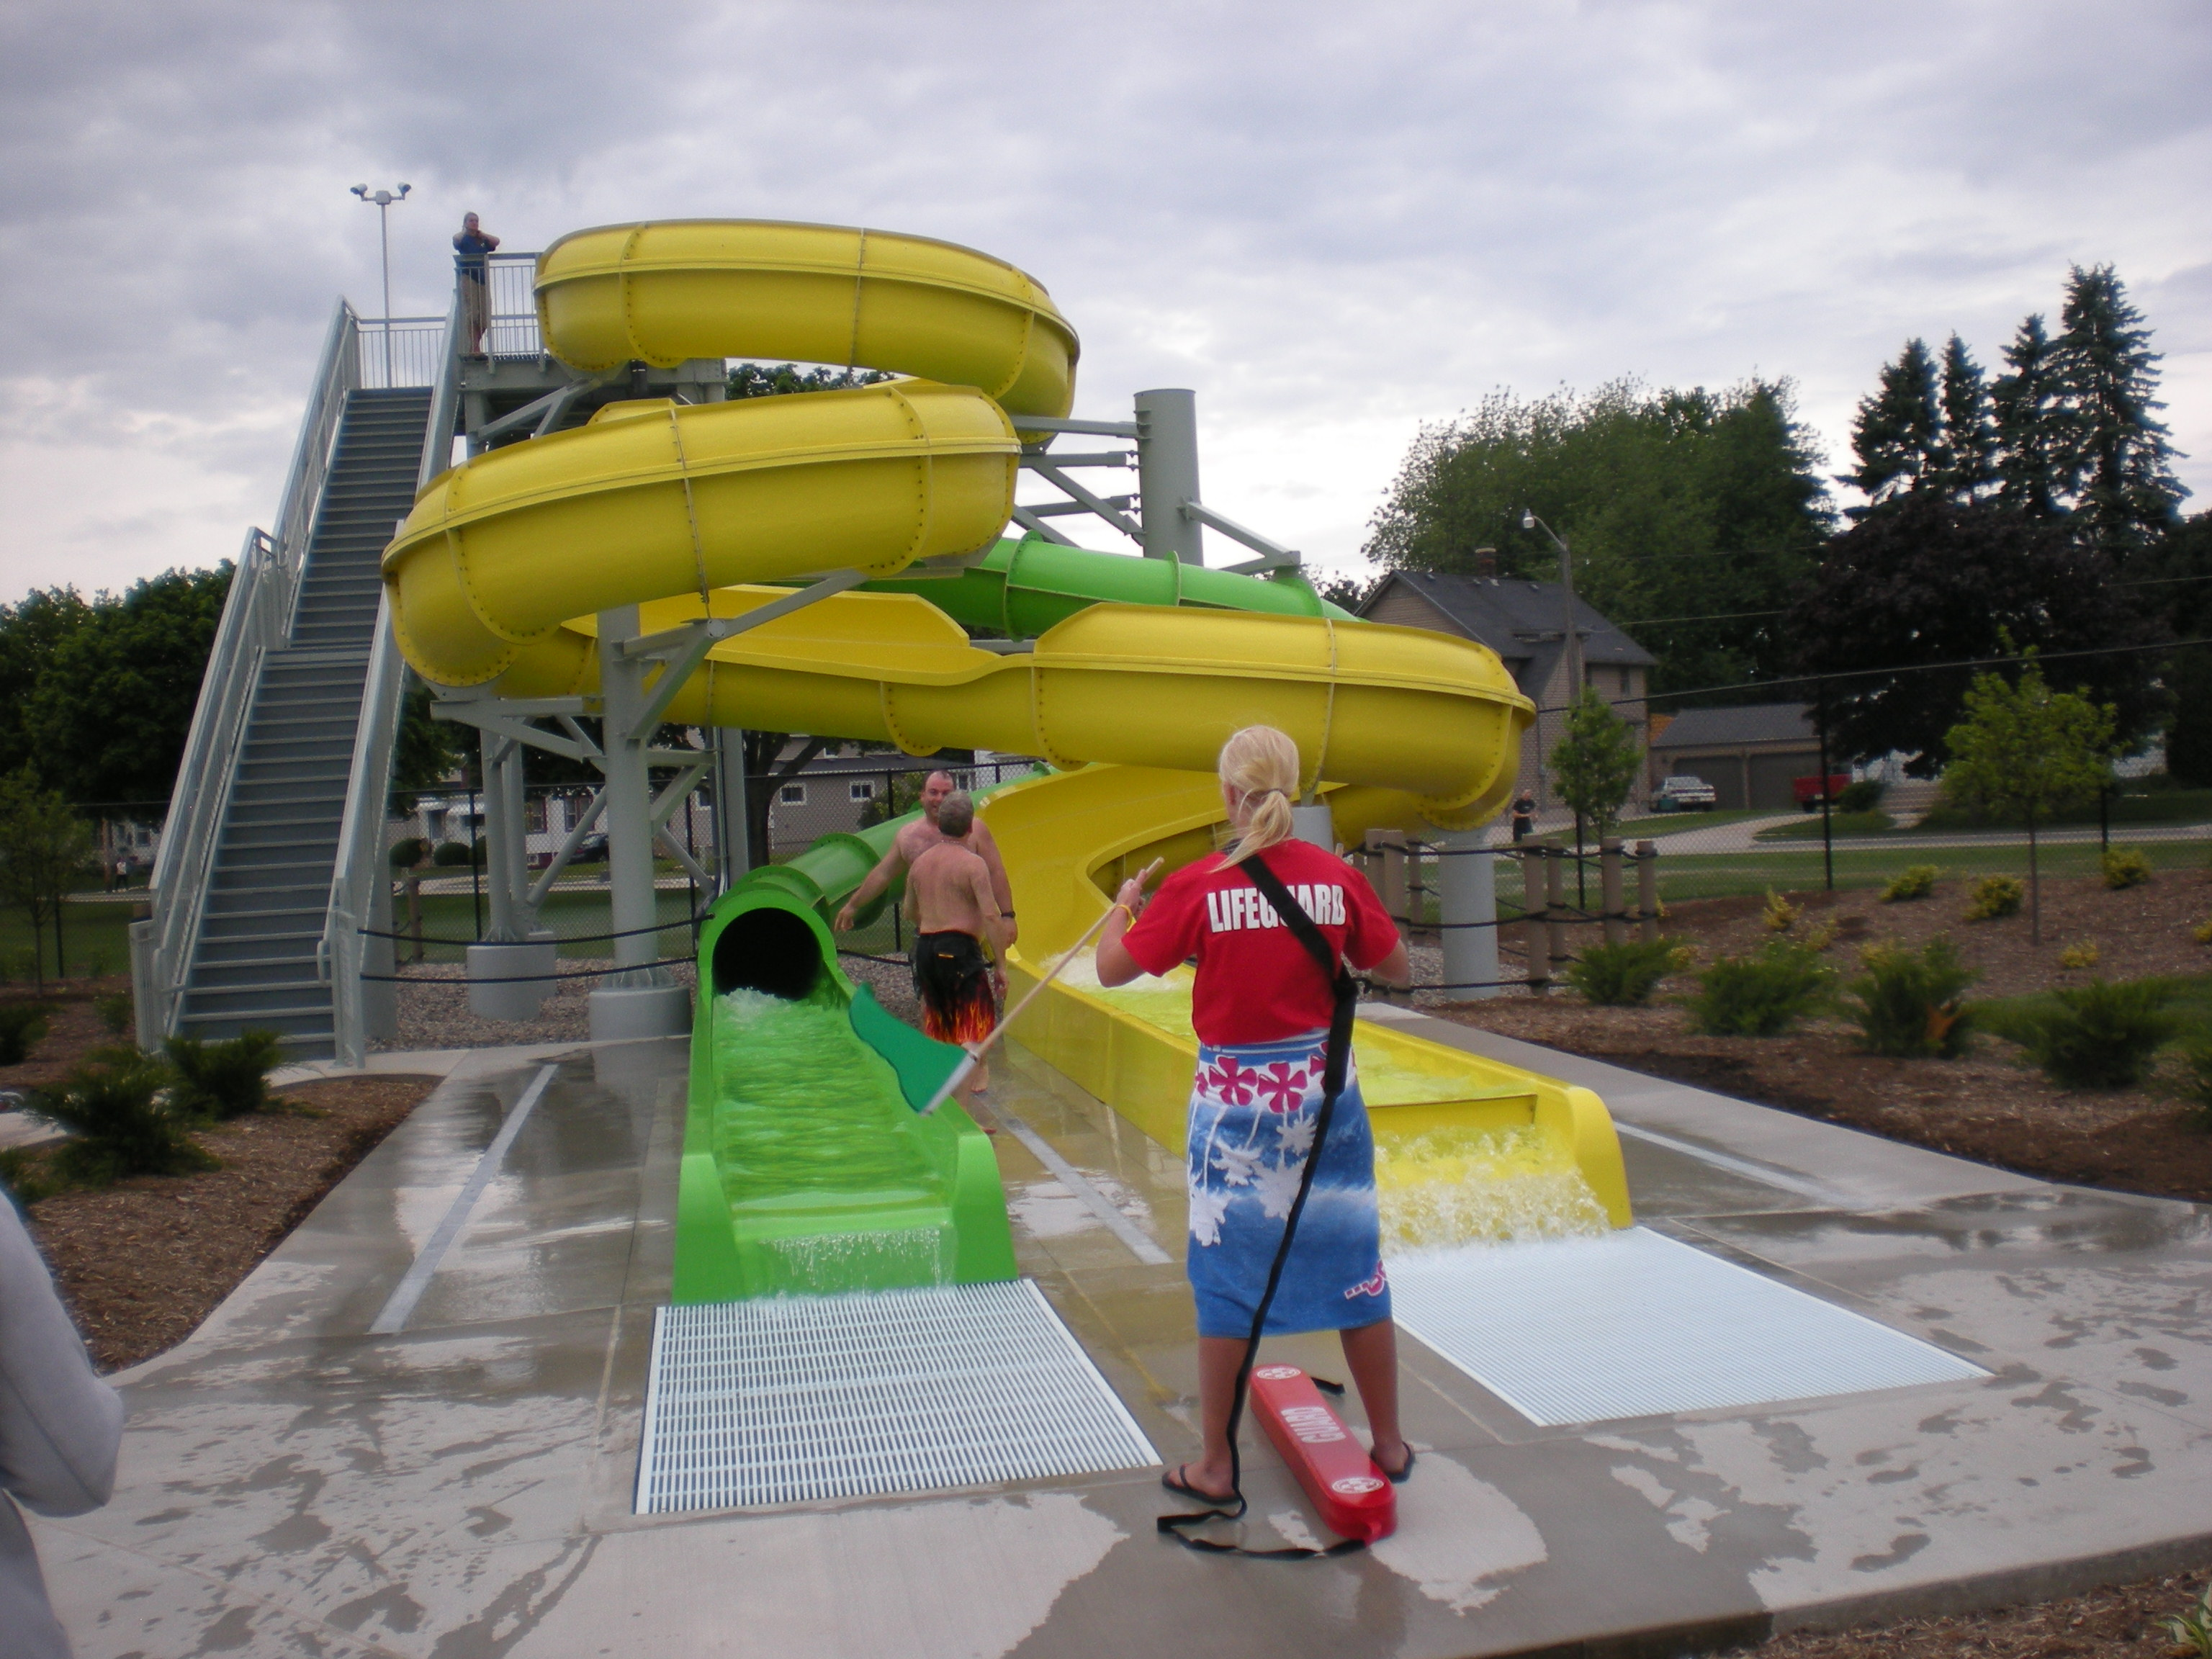 Lifeguards Watching over Extreme Slides